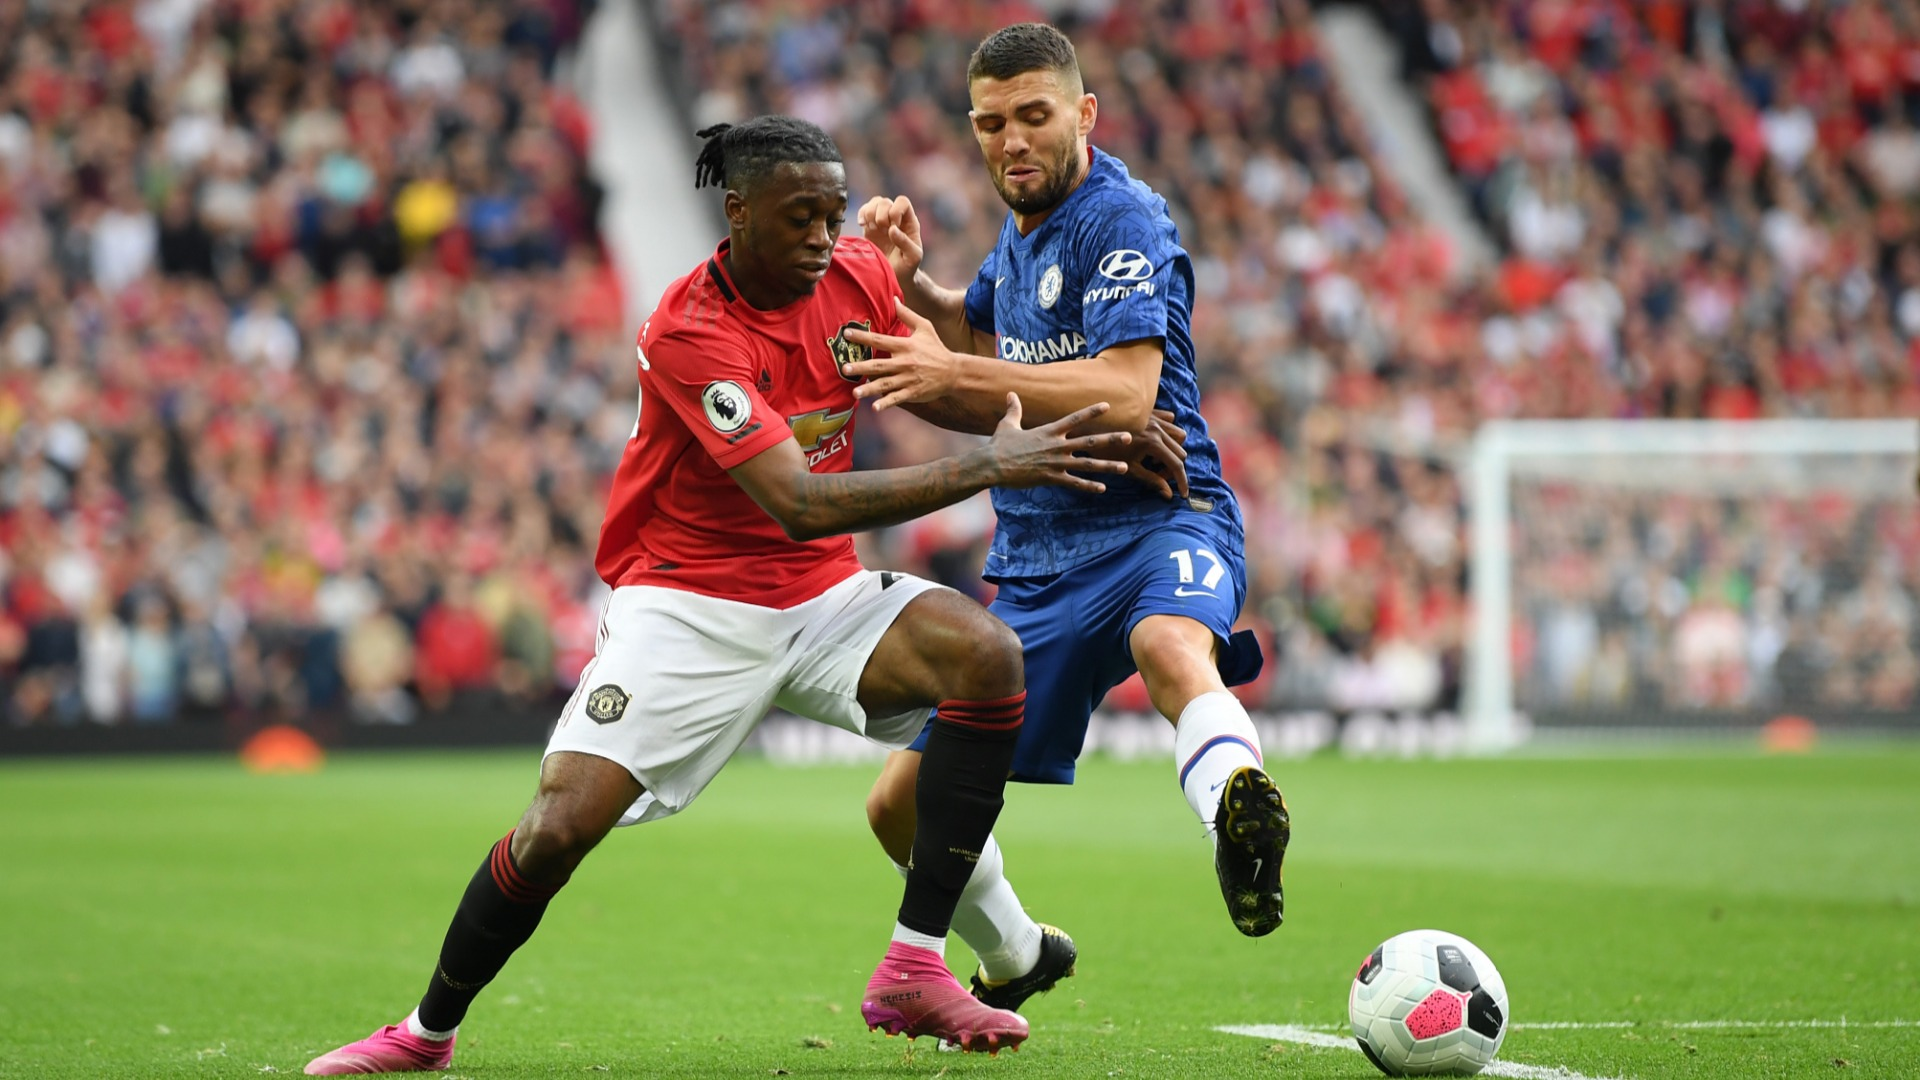 I love tackles, man! - Wan-Bissaka draws confidence from challenges